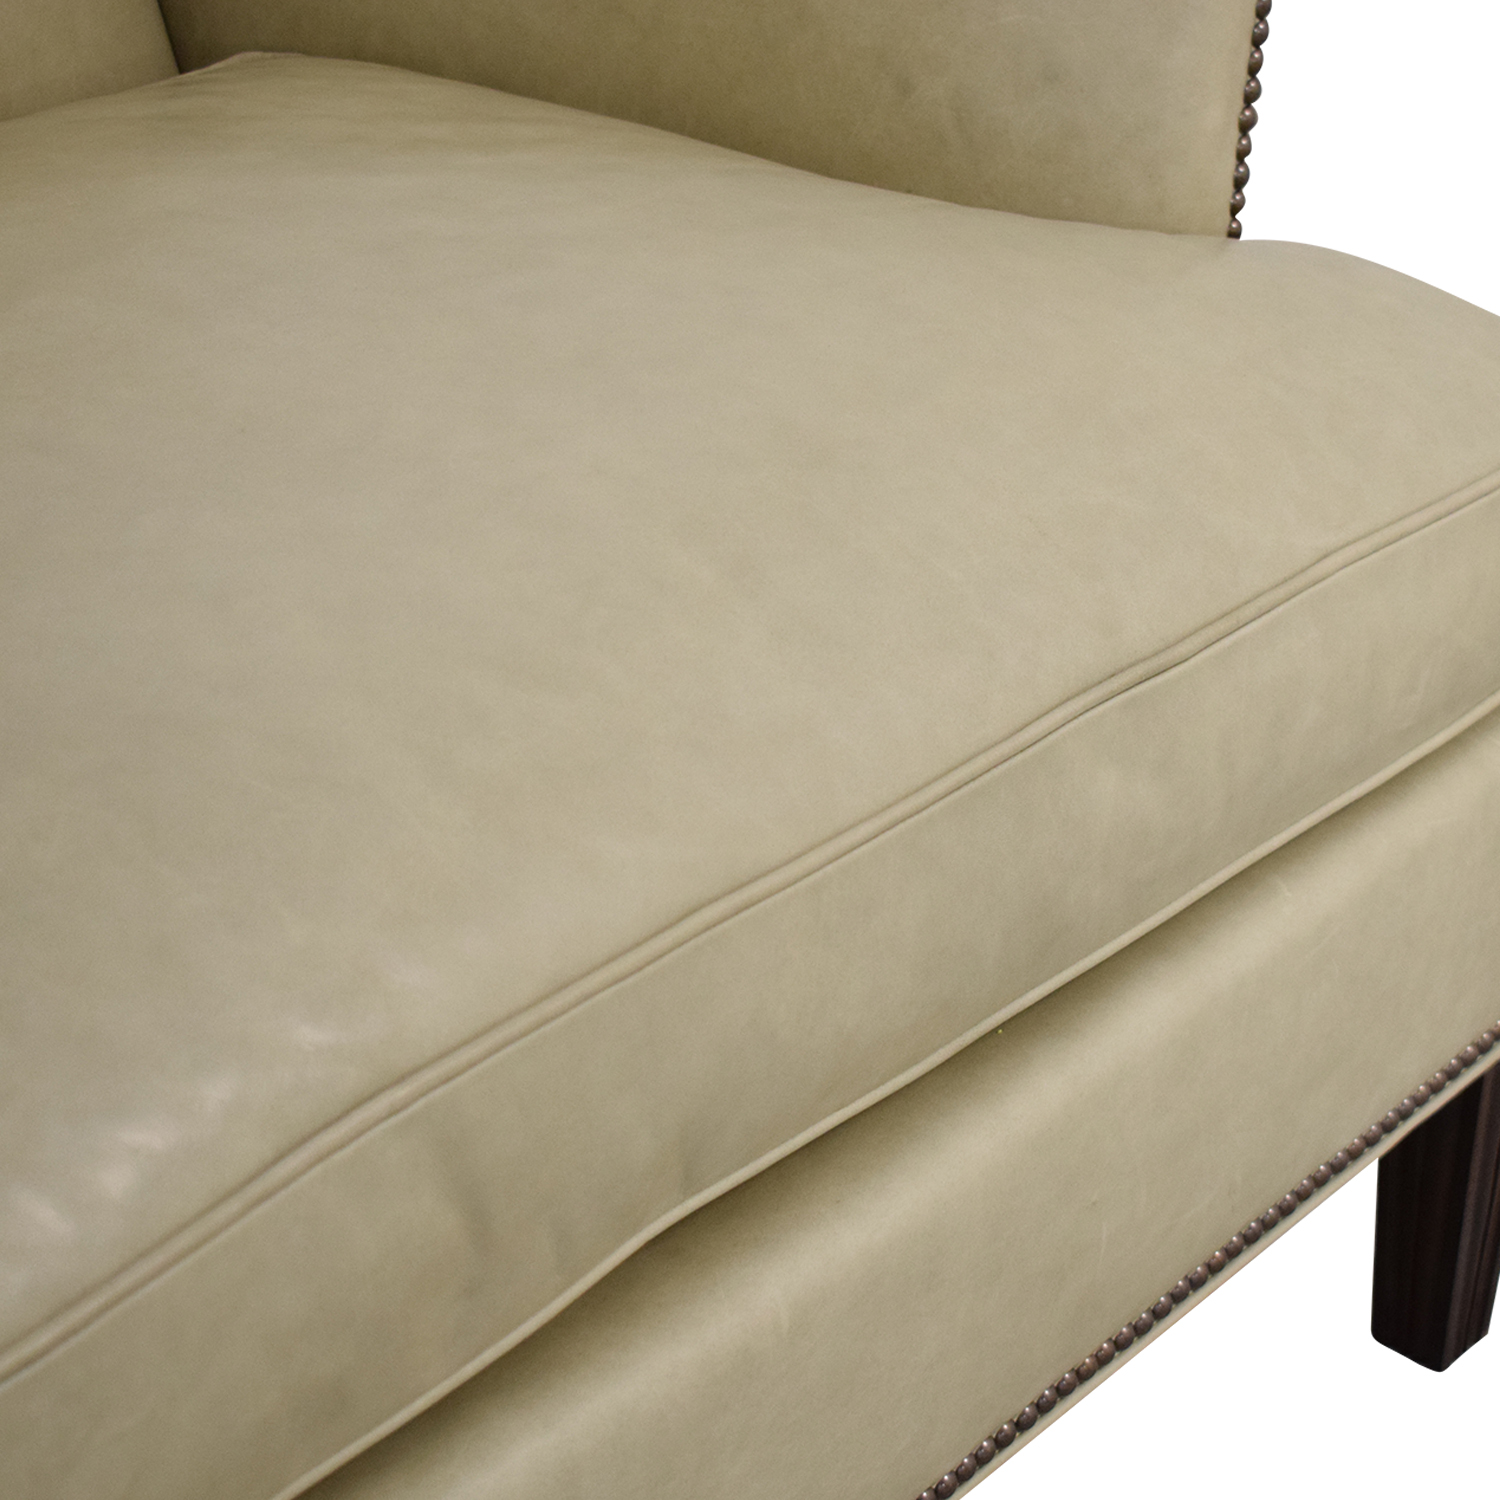 Hickory Chair Hickory Chair Studded Sofa second hand